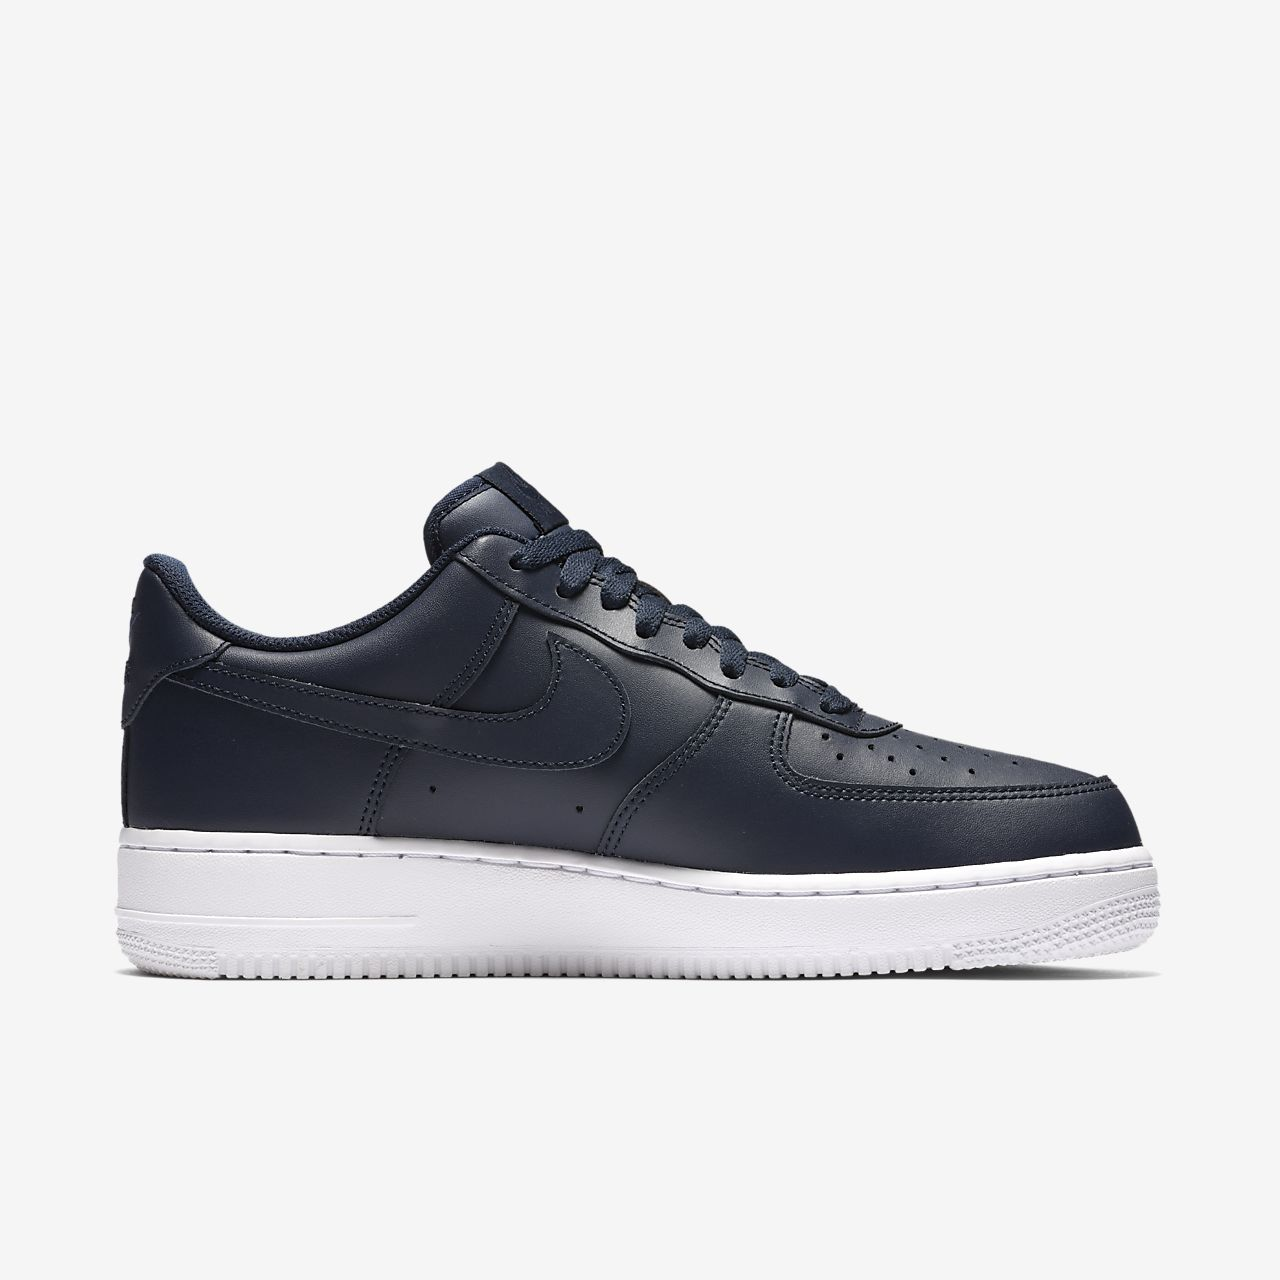 check out c6f7d 73d97 ... Sko Nike Air Force 1 07 för män